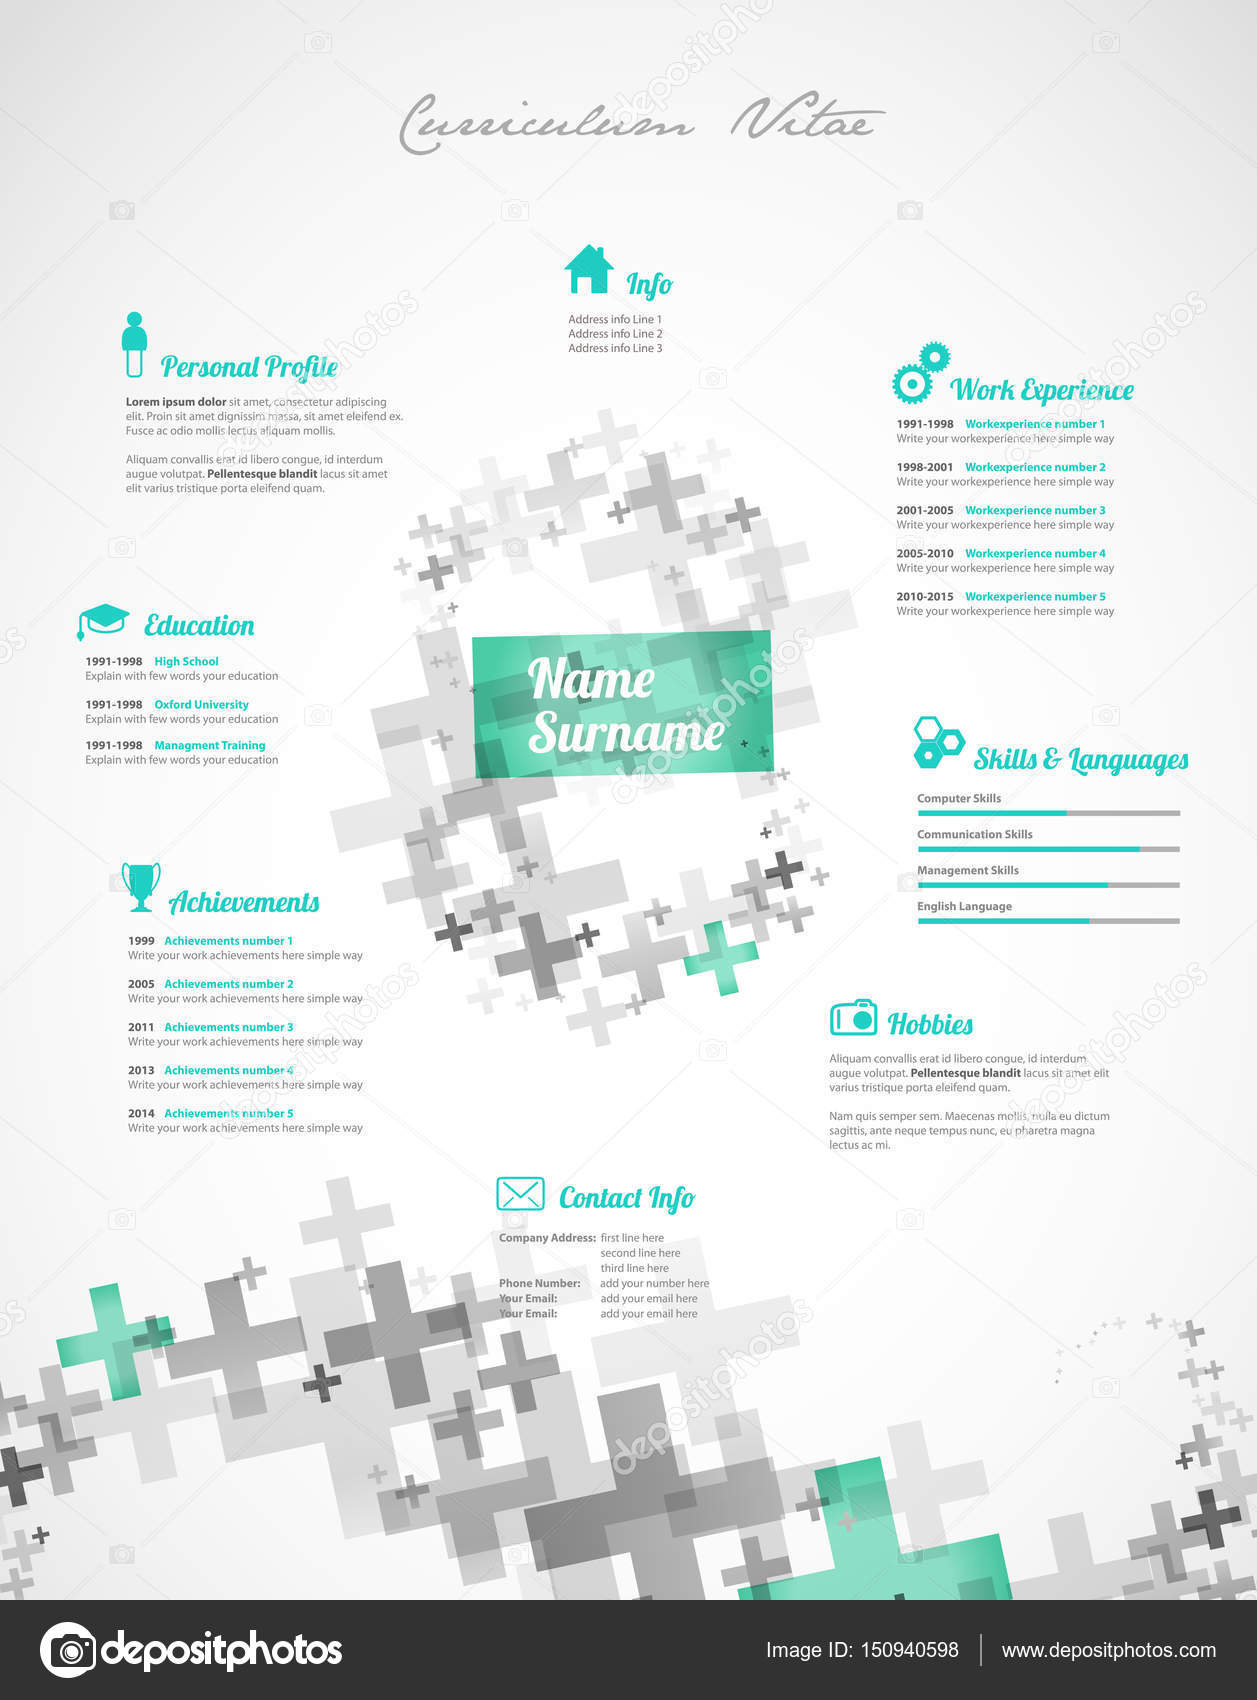 Creativo, verde color Cv / reanudar plantilla — Vector de stock ...